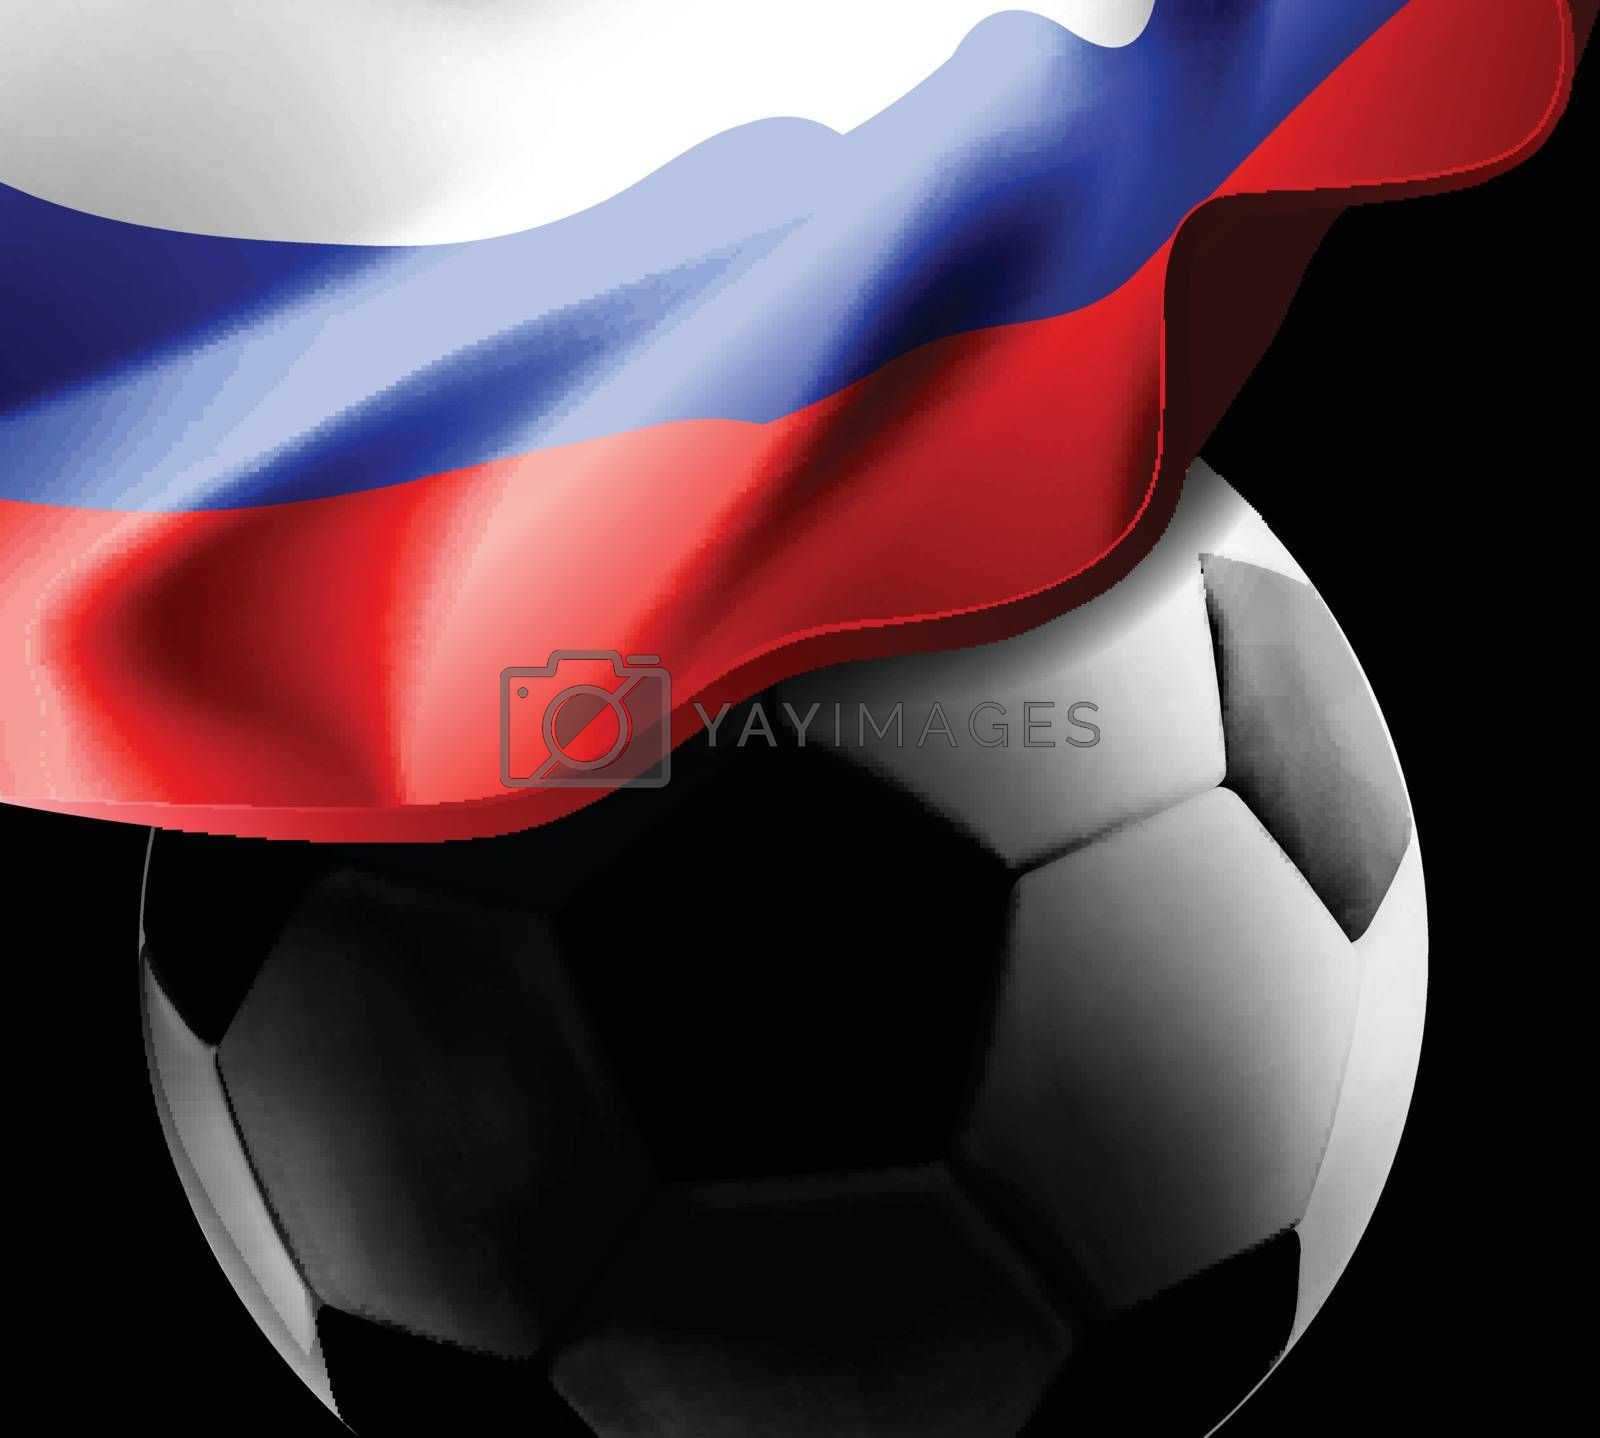 World Championship Football 2018 Background Soccer Russia with flag and football ball. Vector illustration on black